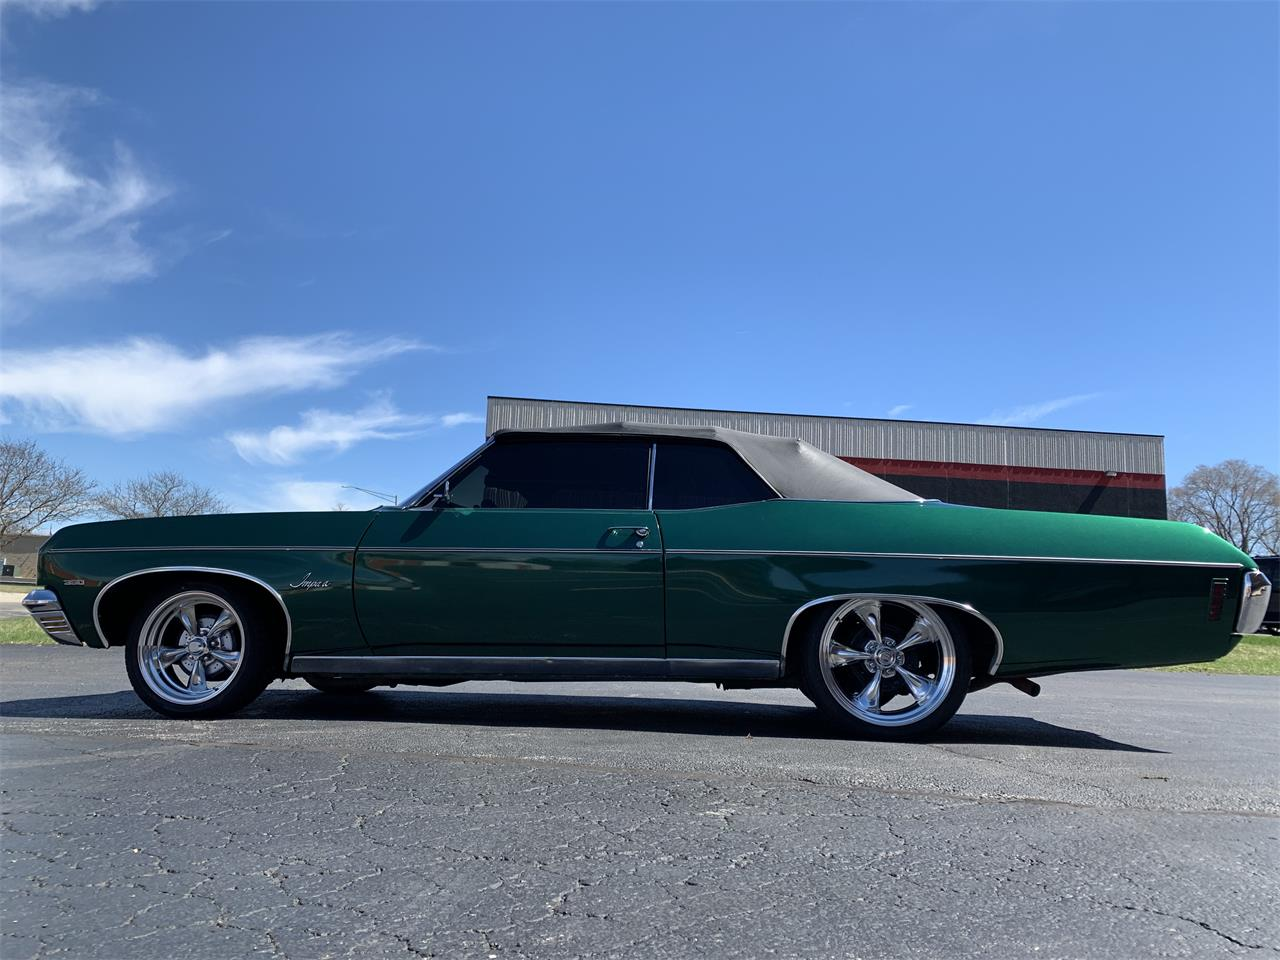 Large Picture of Classic '70 Chevrolet Impala located in Illinois - $24,995.00 - PUOX